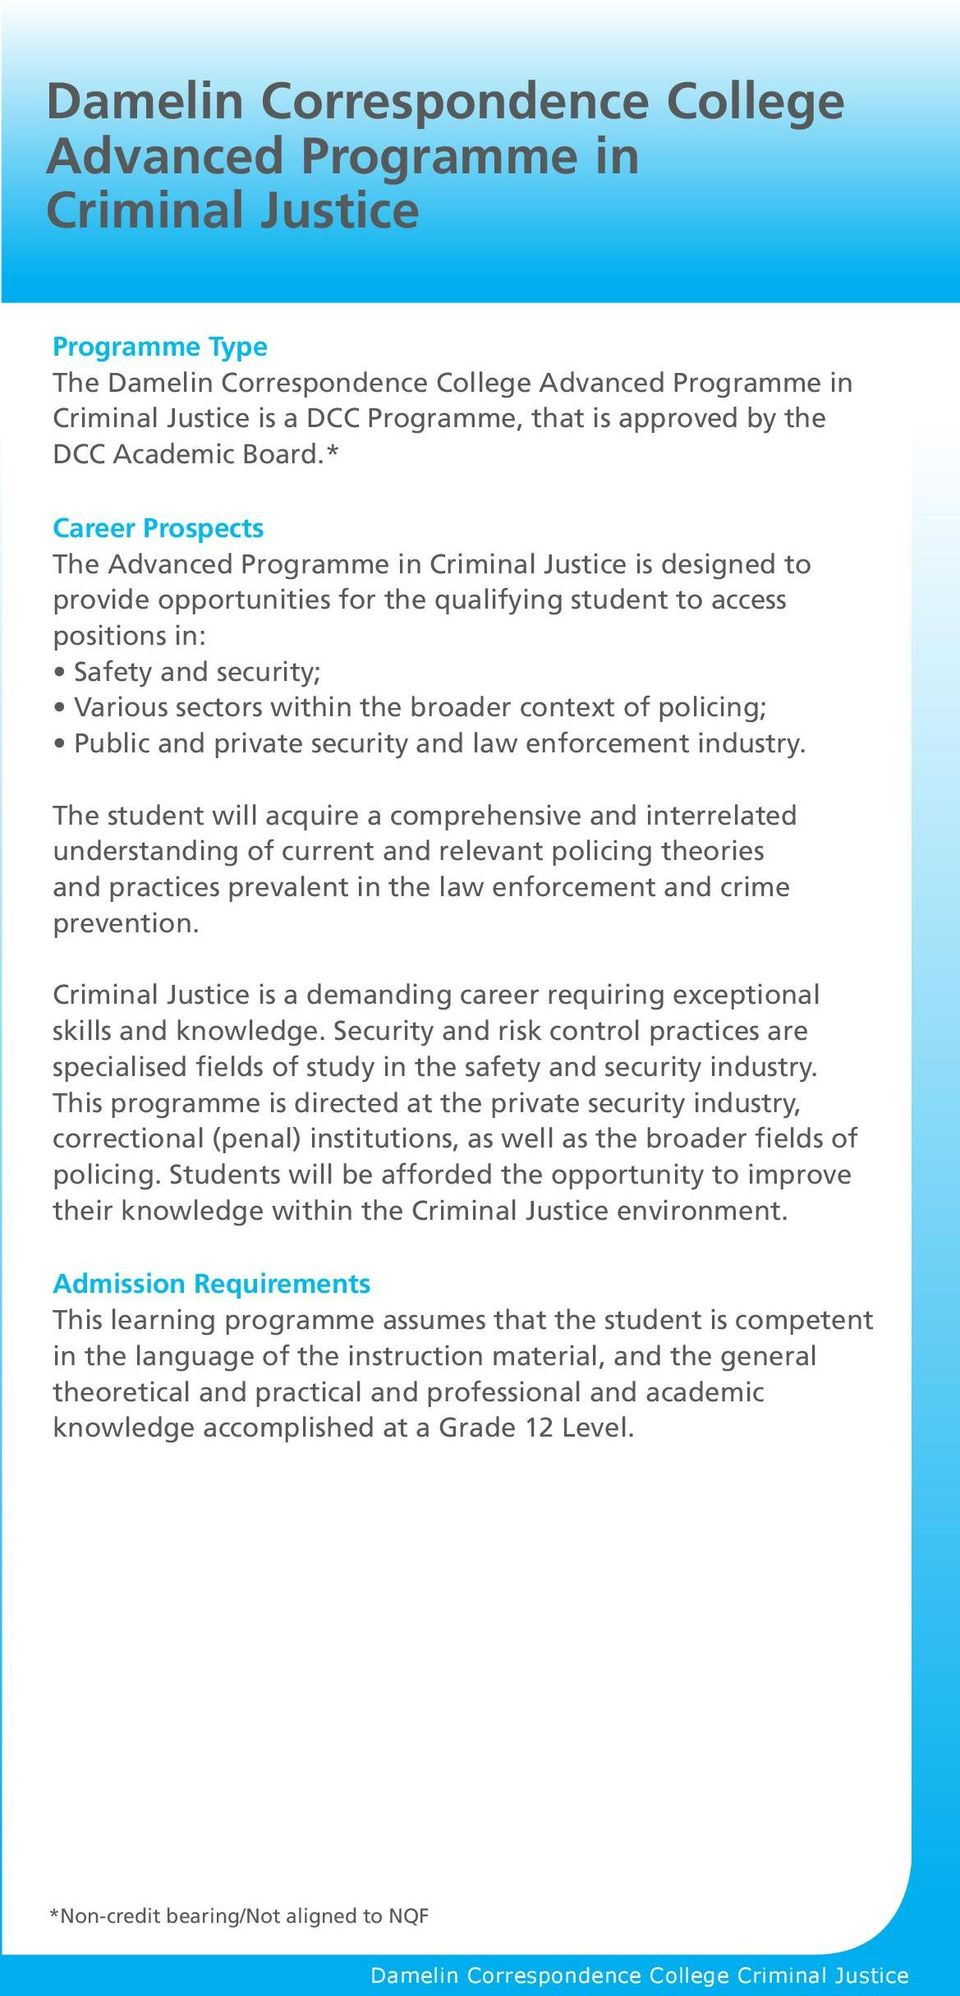 * Career Prospects The Advanced Programme in Criminal Justice is designed to provide opportunities for the qualifying student to access positions in: Safety and security; Various sectors within the